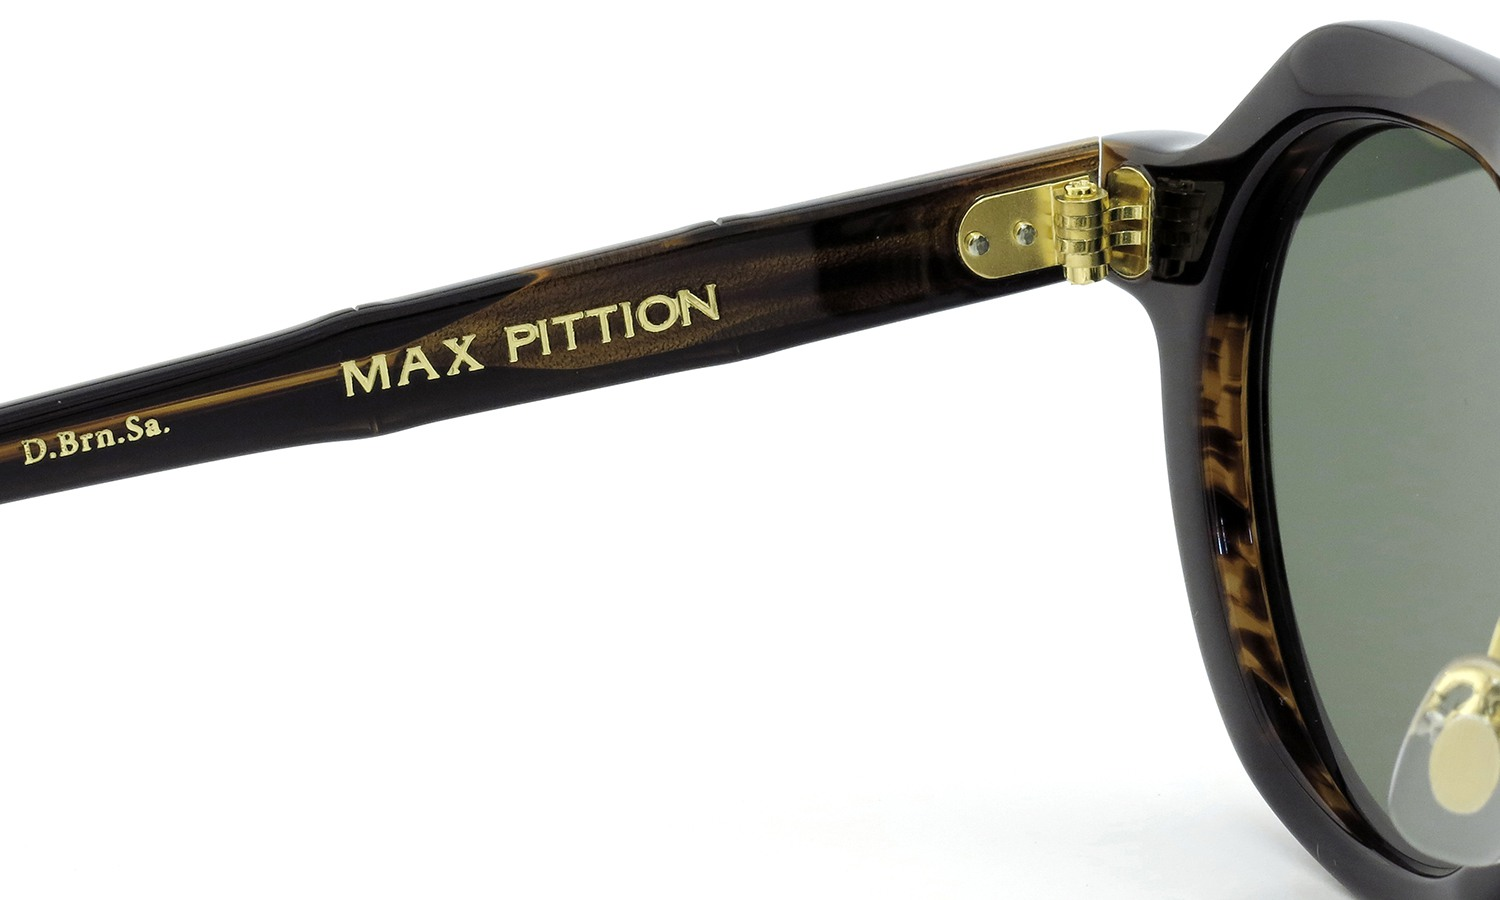 MAX PITTION マックス・ピティオンサングラス [MAP COLLECTION] Diplomat ディプロマット 44.6size D.Brn.Sa.